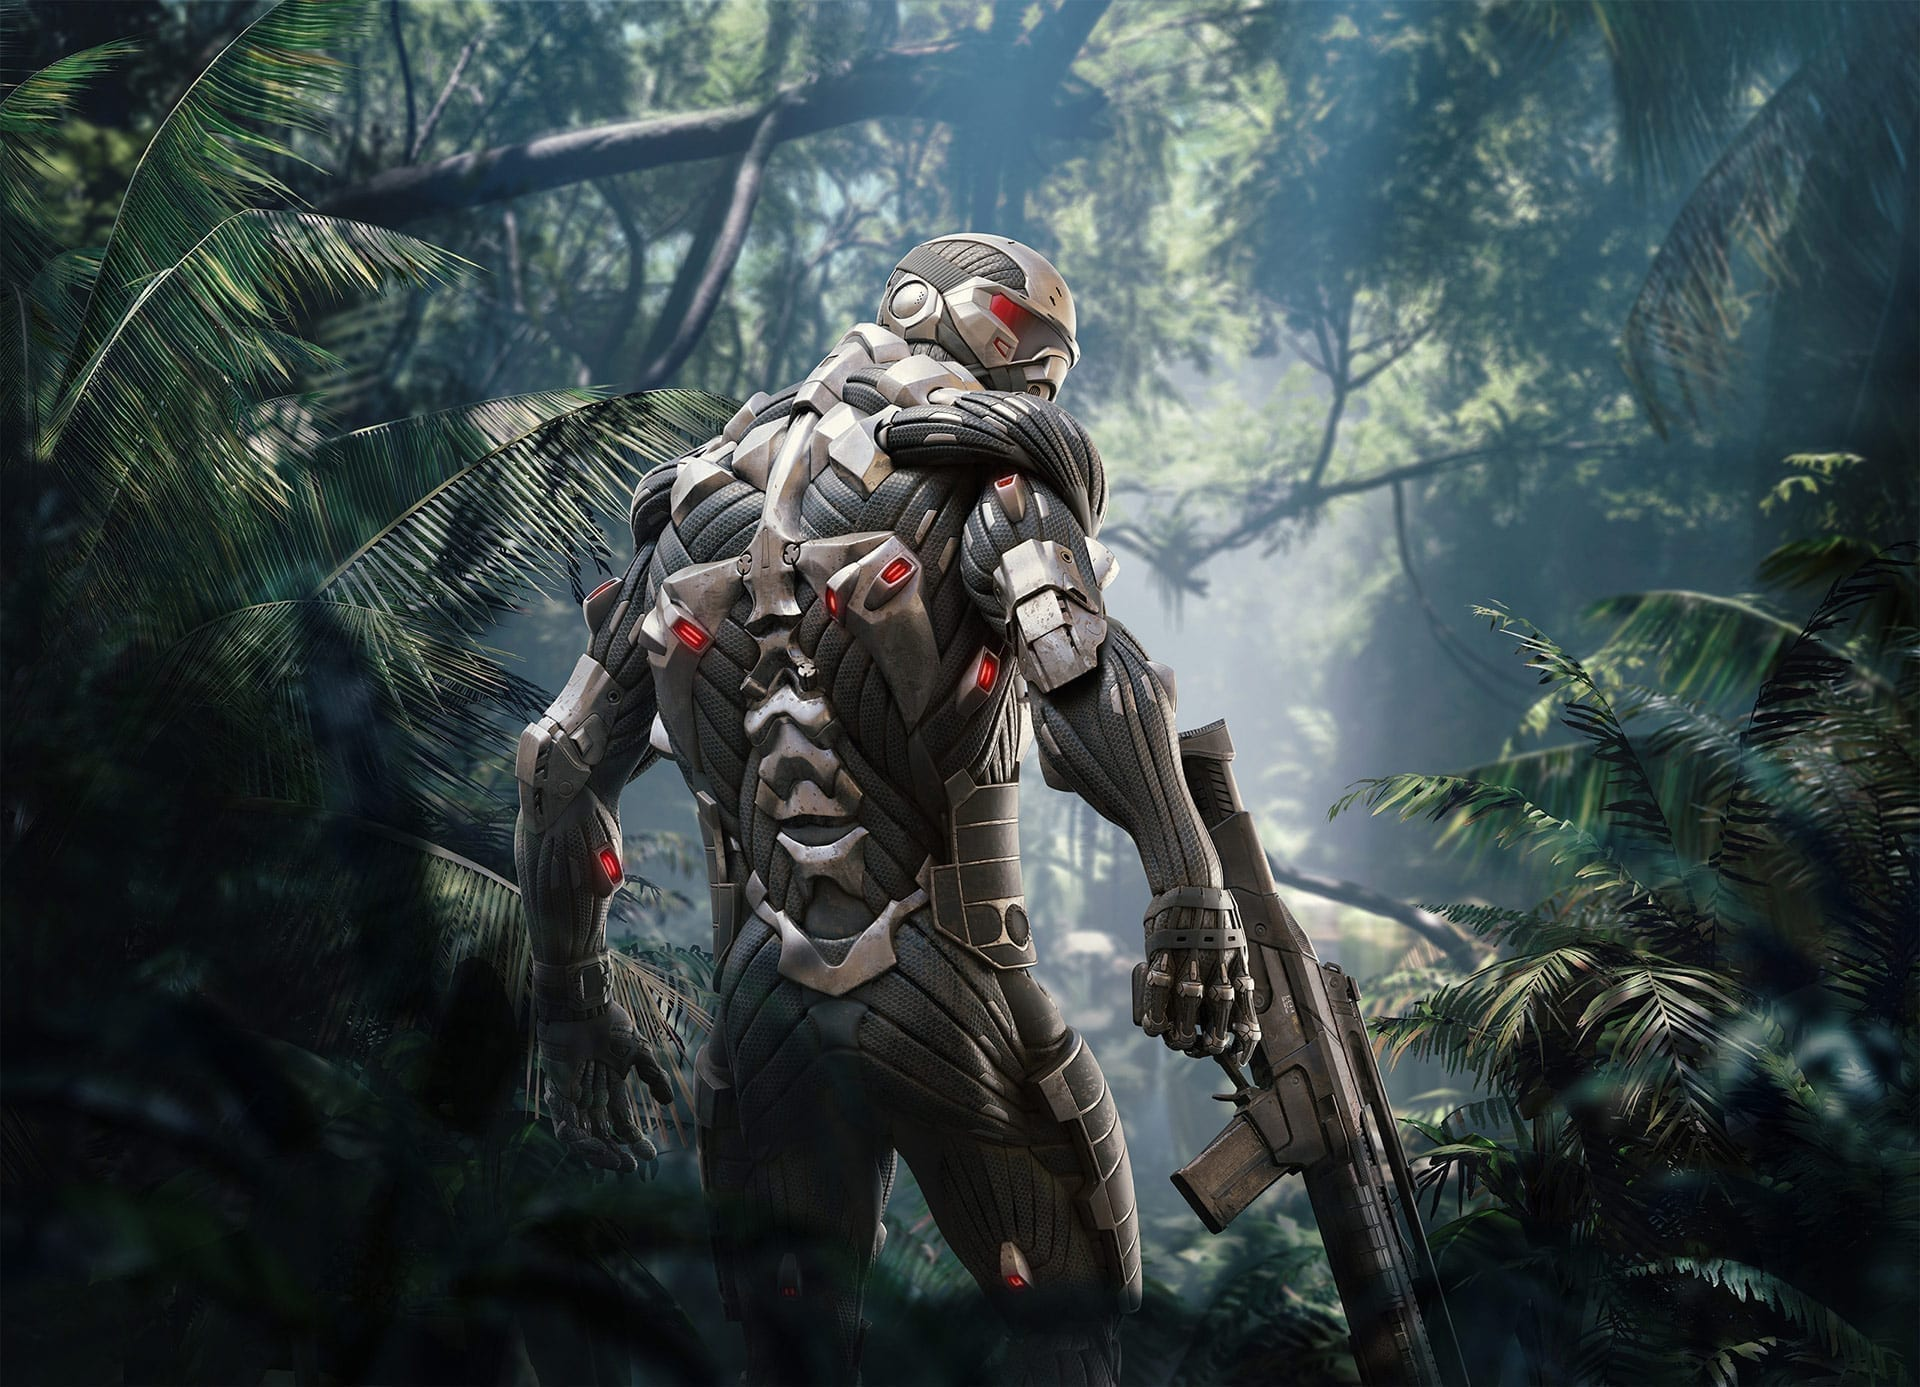 Crysis Remastered Gameplay Trailer and Release Date Delayed.